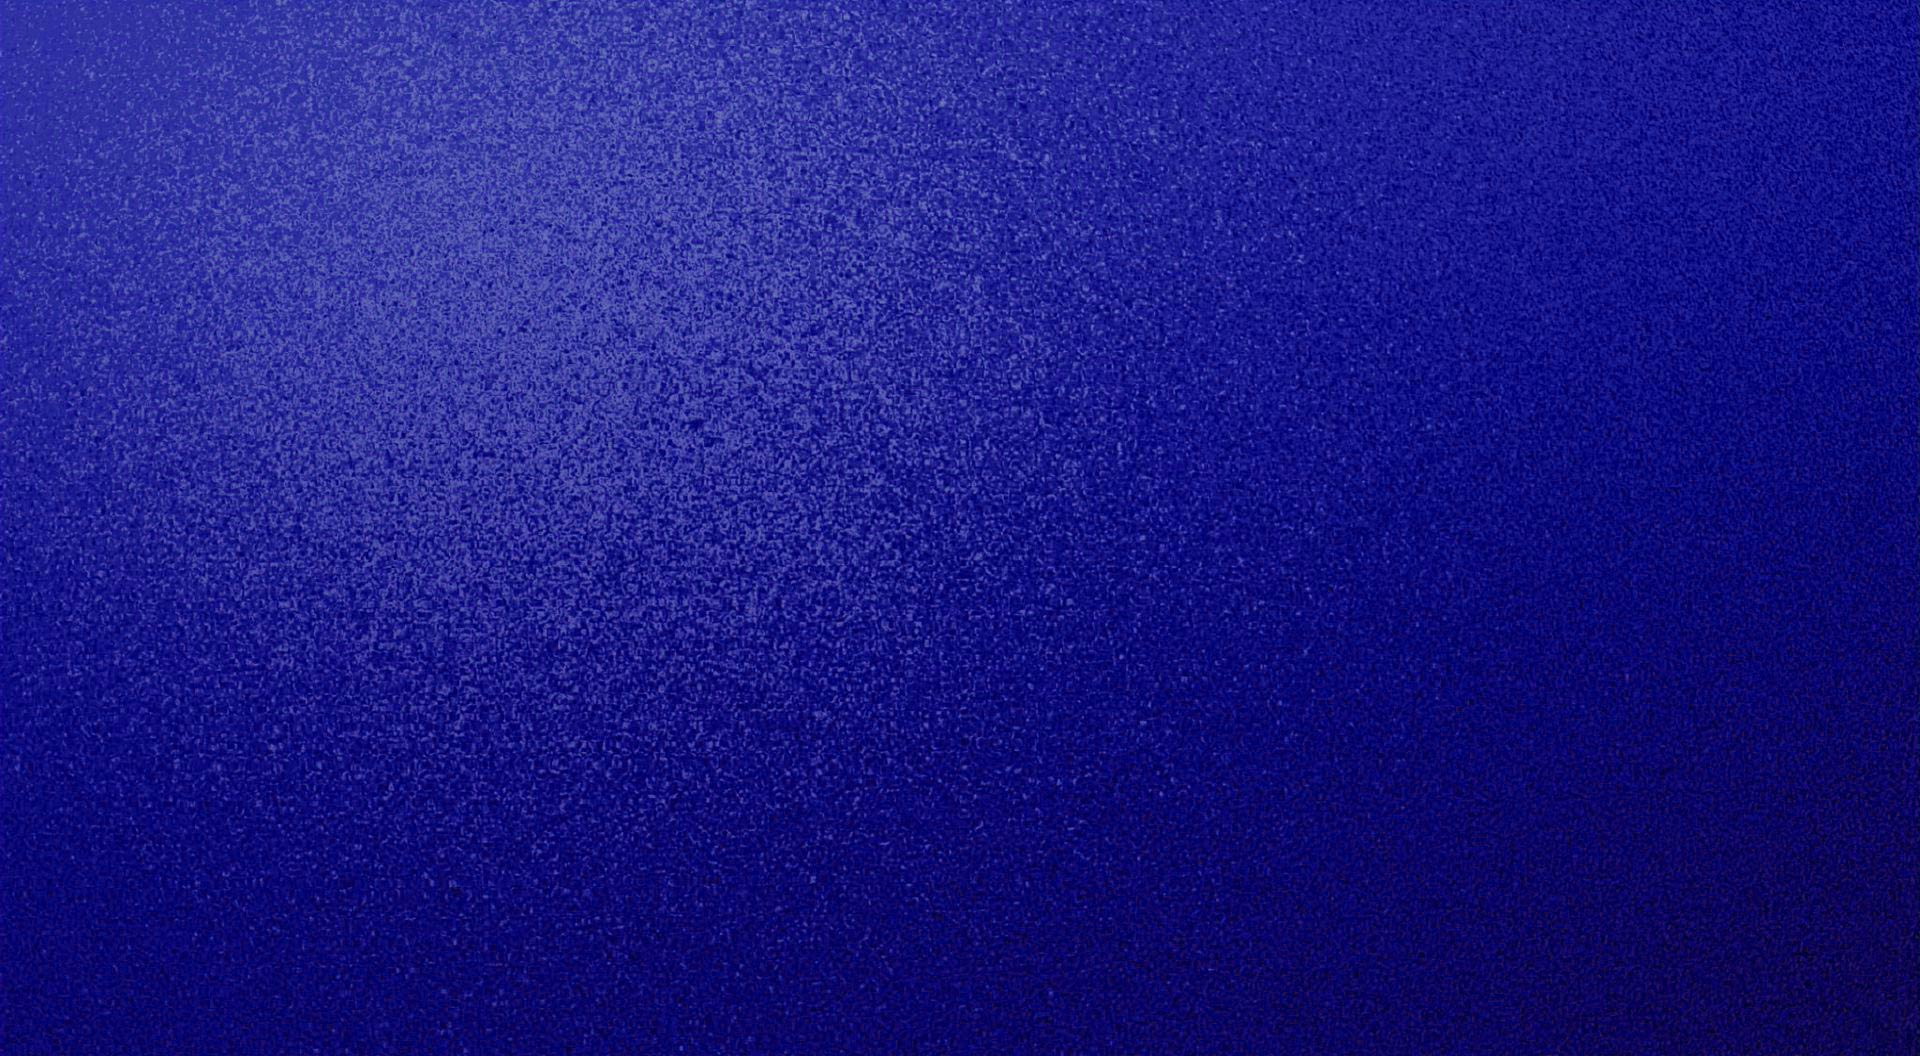 Navy Blue Backgrounds - Wallpaper Cave